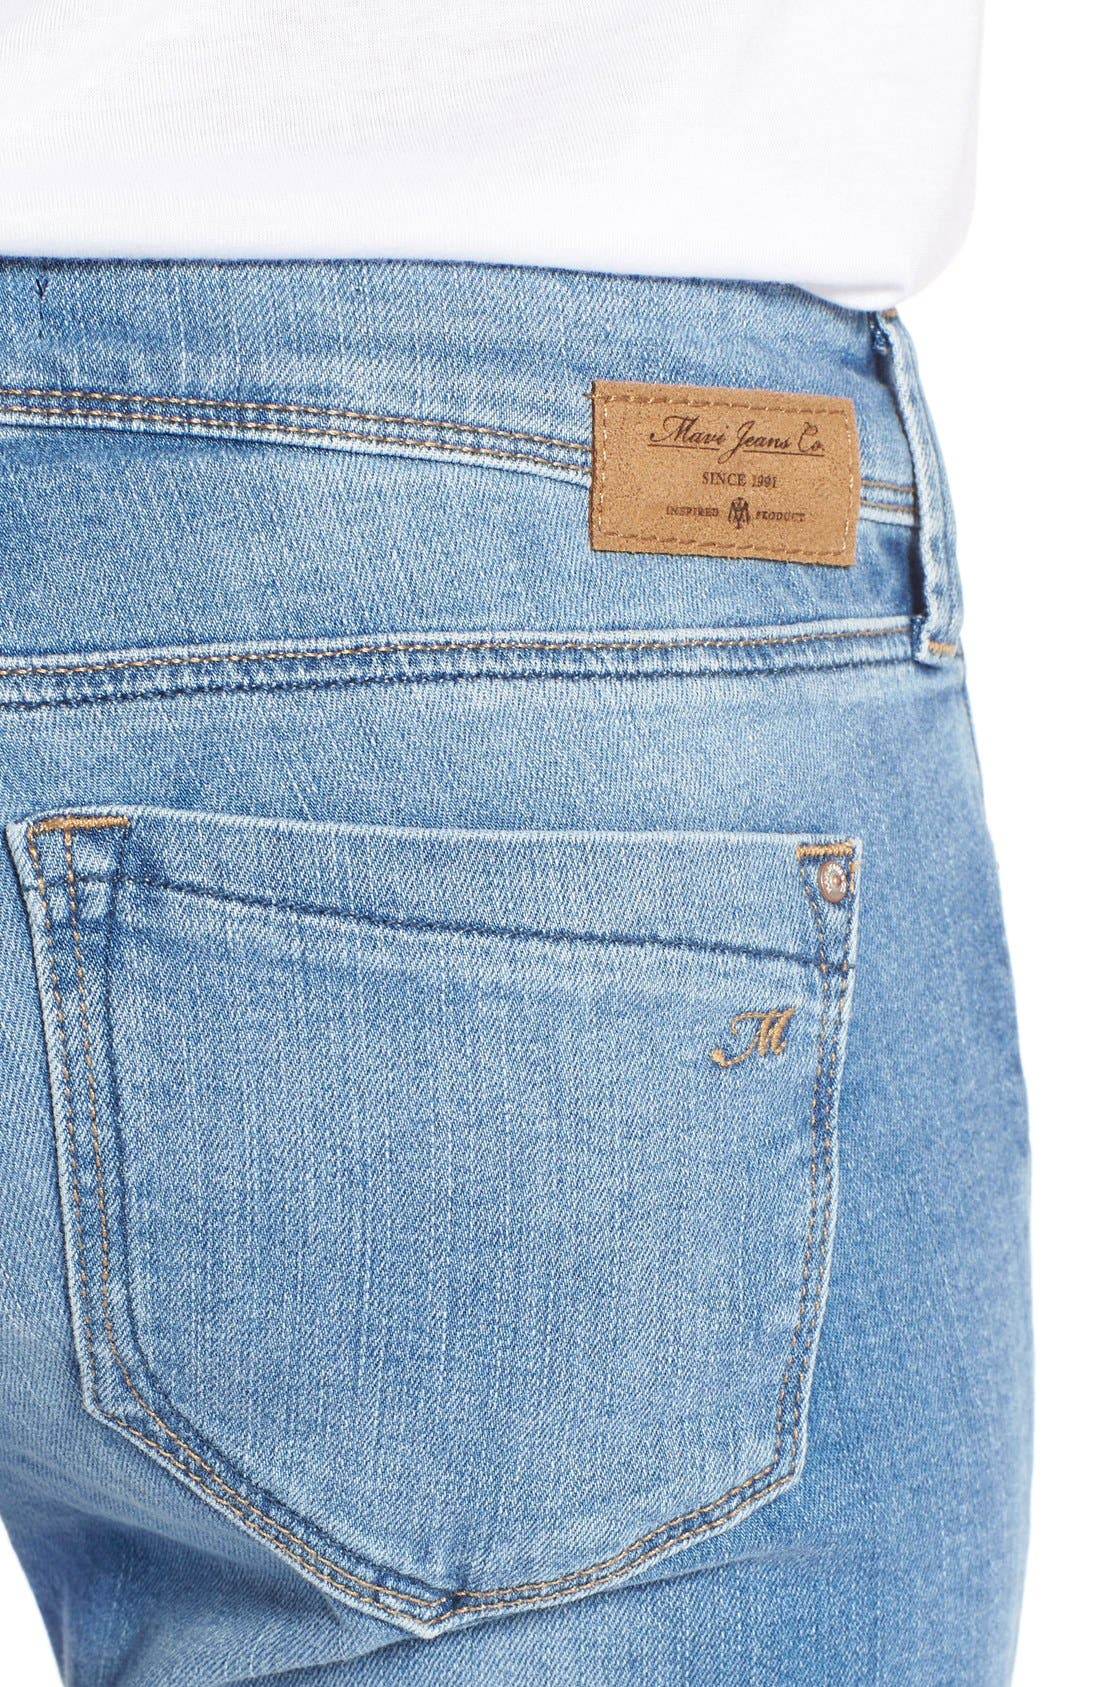 'Peace' Stretch Flare Leg Jeans,                             Alternate thumbnail 4, color,                             Light Ripped